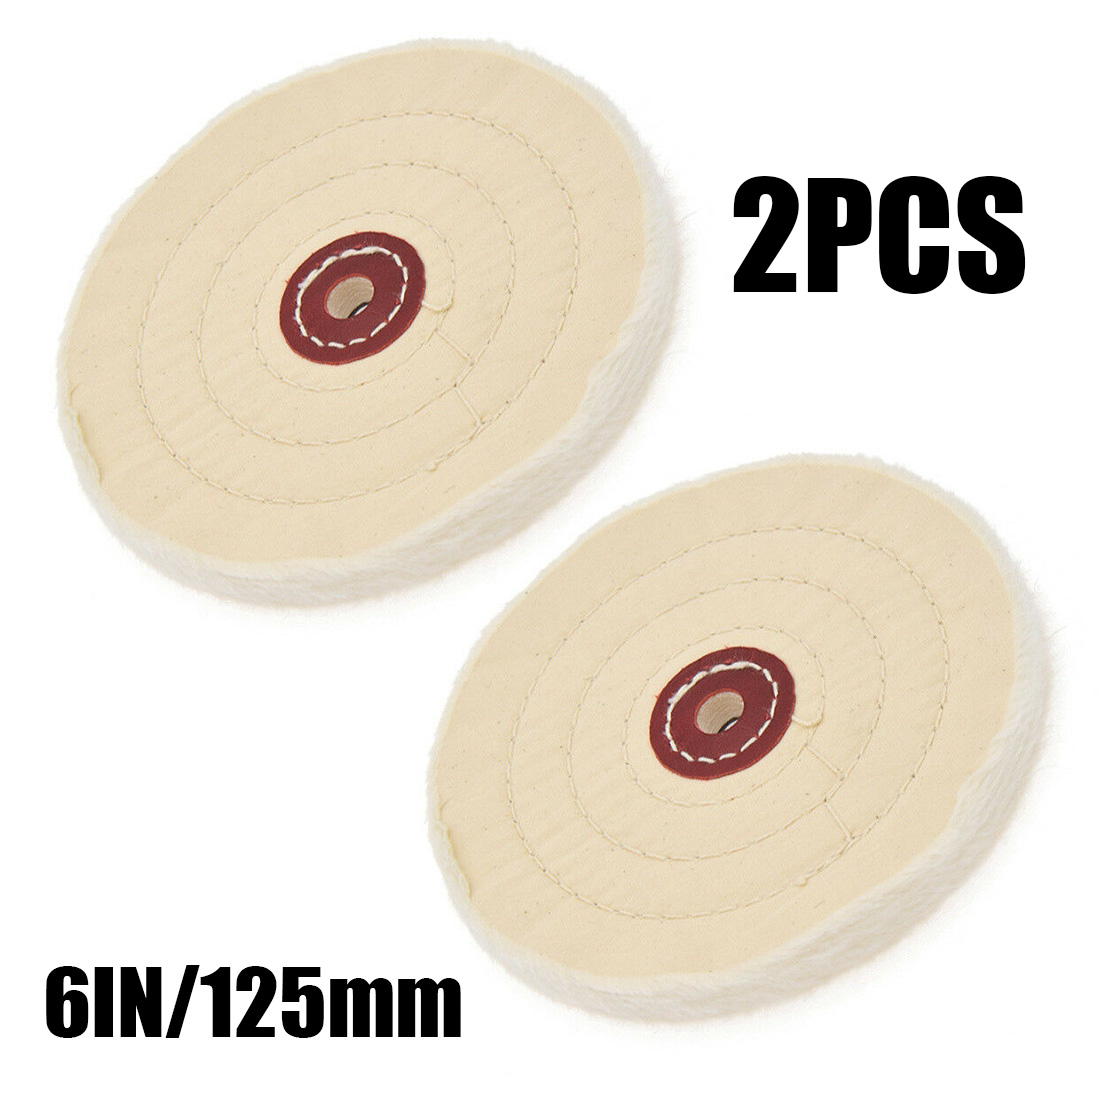 2Pcs 6Inch Cloth Buffing Polishing Wheel Buffer Jewelry Grinder Pad Handcraft  Aluminum Stainless Steel Polishing